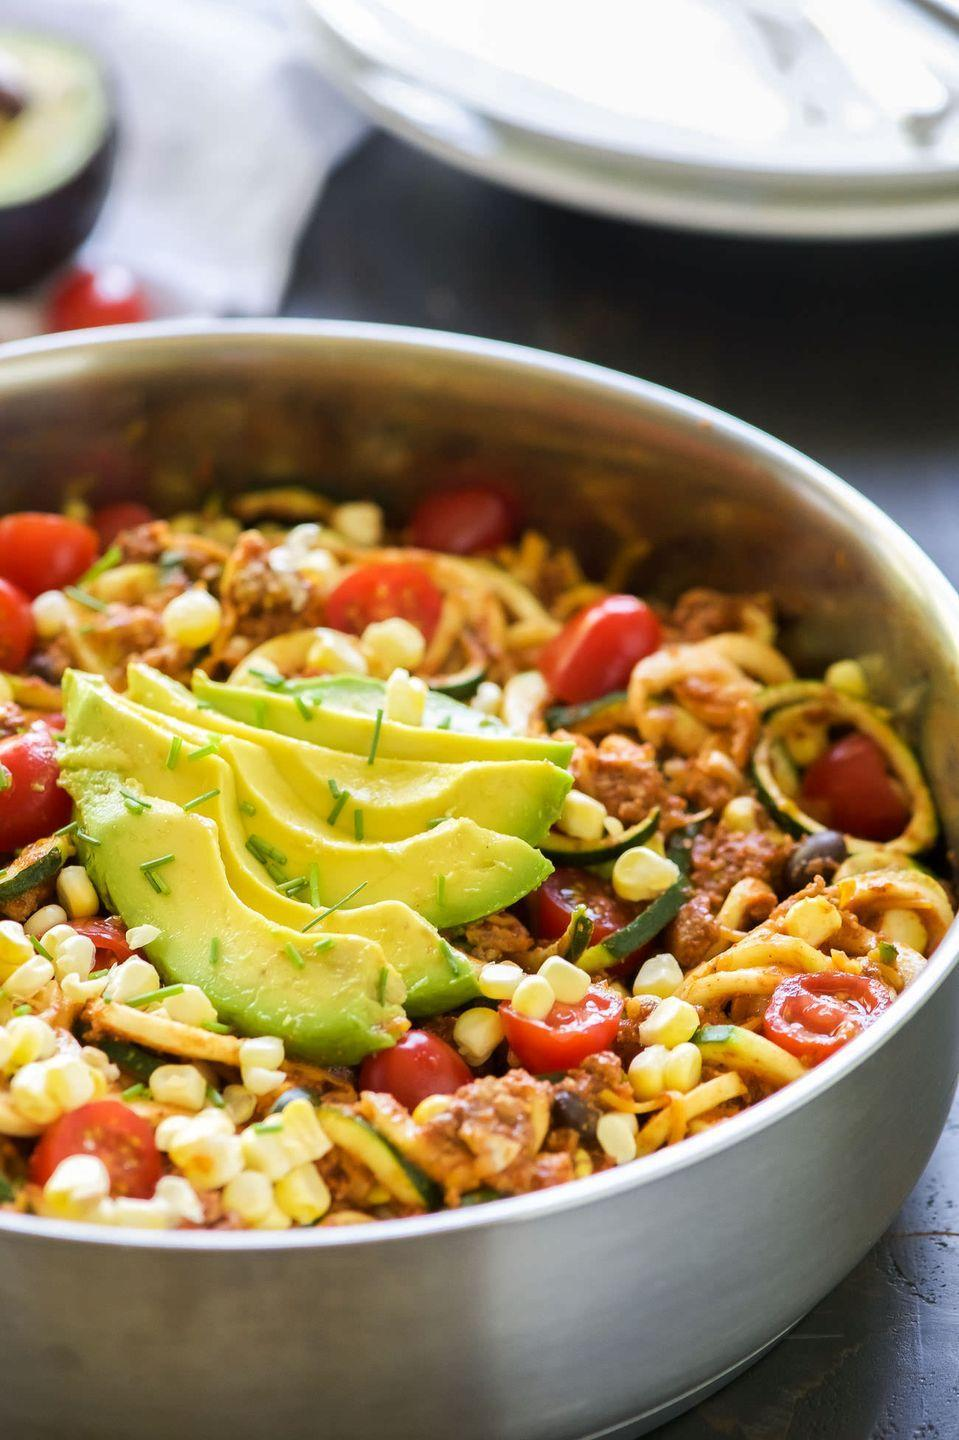 """<p>We never thought we'd ditch the tortillas on Taco Tuesday ... until <em>now</em>.</p><p><a href=""""http://withsaltandwit.com/one-pot-cheesy-taco-zucchini-noodle-skillet/"""" rel=""""nofollow noopener"""" target=""""_blank"""" data-ylk=""""slk:Get the recipe from With Salt and Wit »"""" class=""""link rapid-noclick-resp""""><em>Get the recipe from With Salt and Wit »</em></a></p>"""